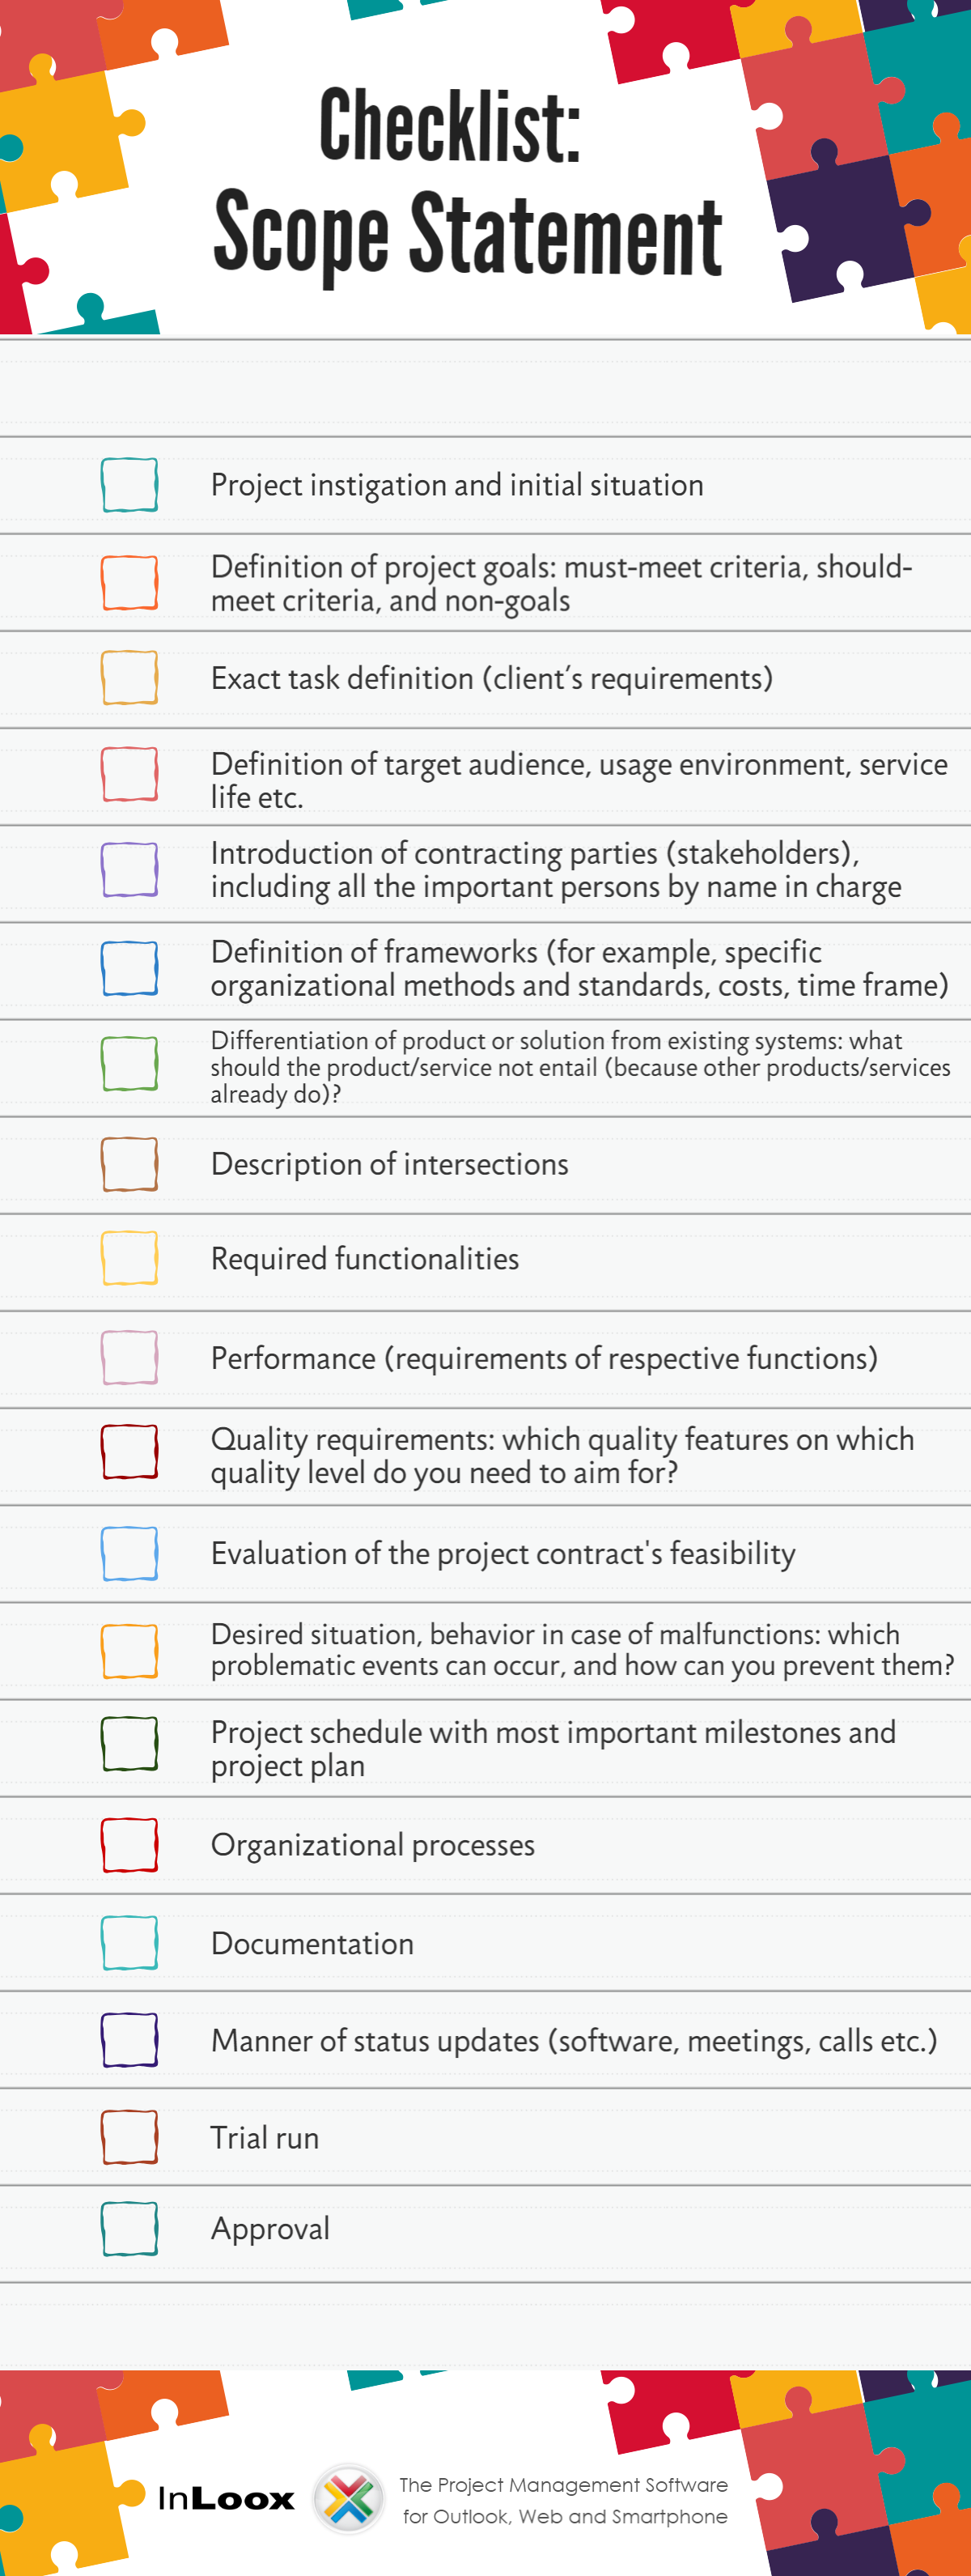 INFOGRAPHIC Checklist: ProjectScope Statement